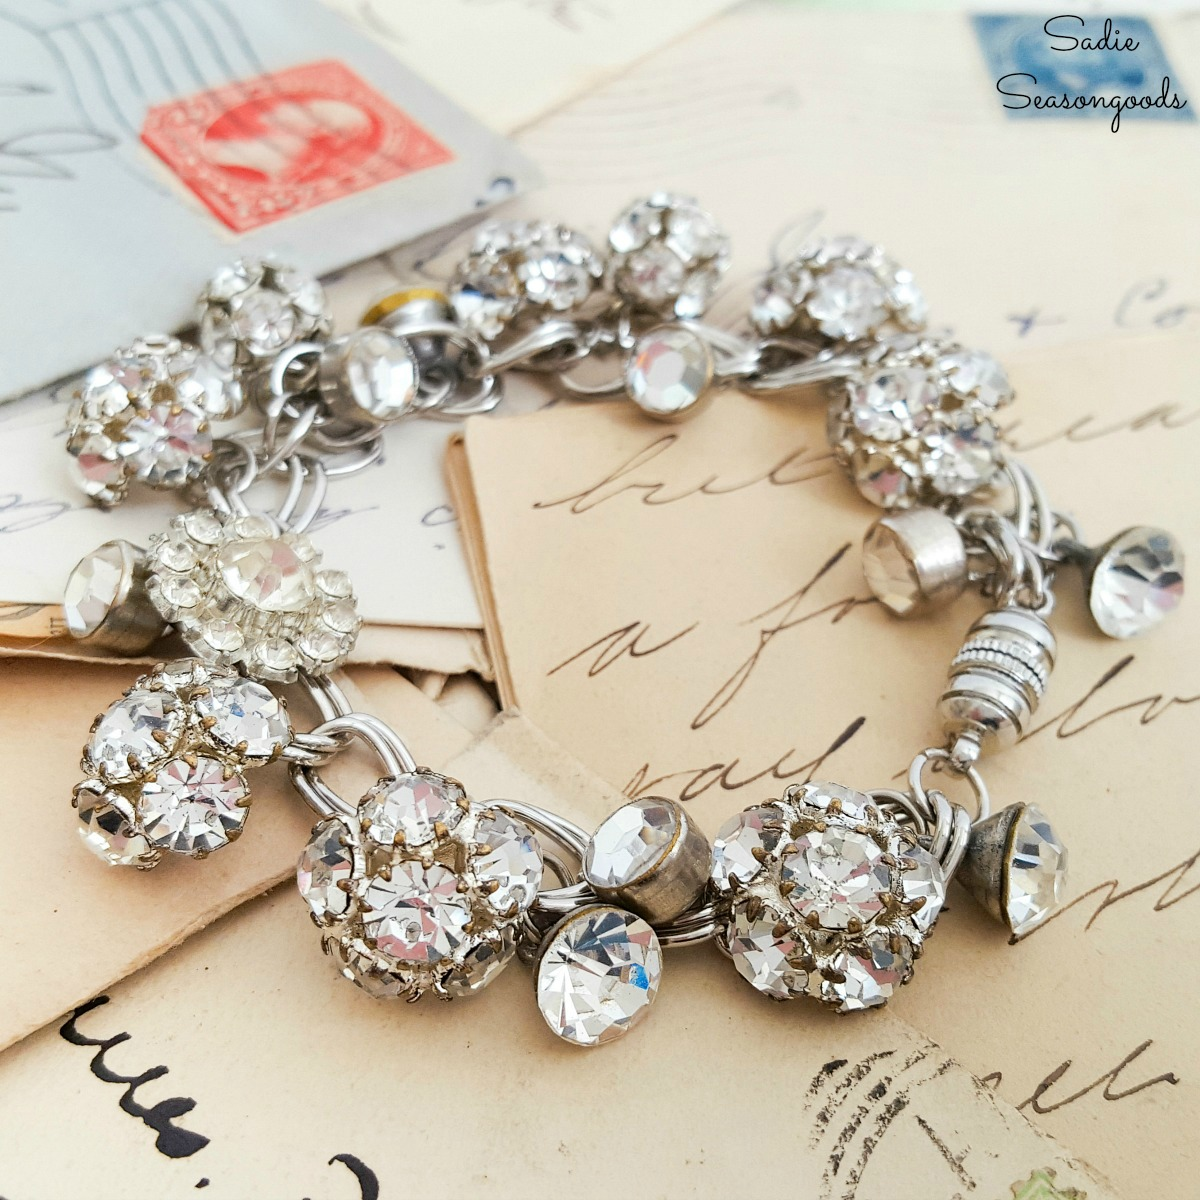 How to Make a DIY Charm Bracelet with Rhinestone Buttons